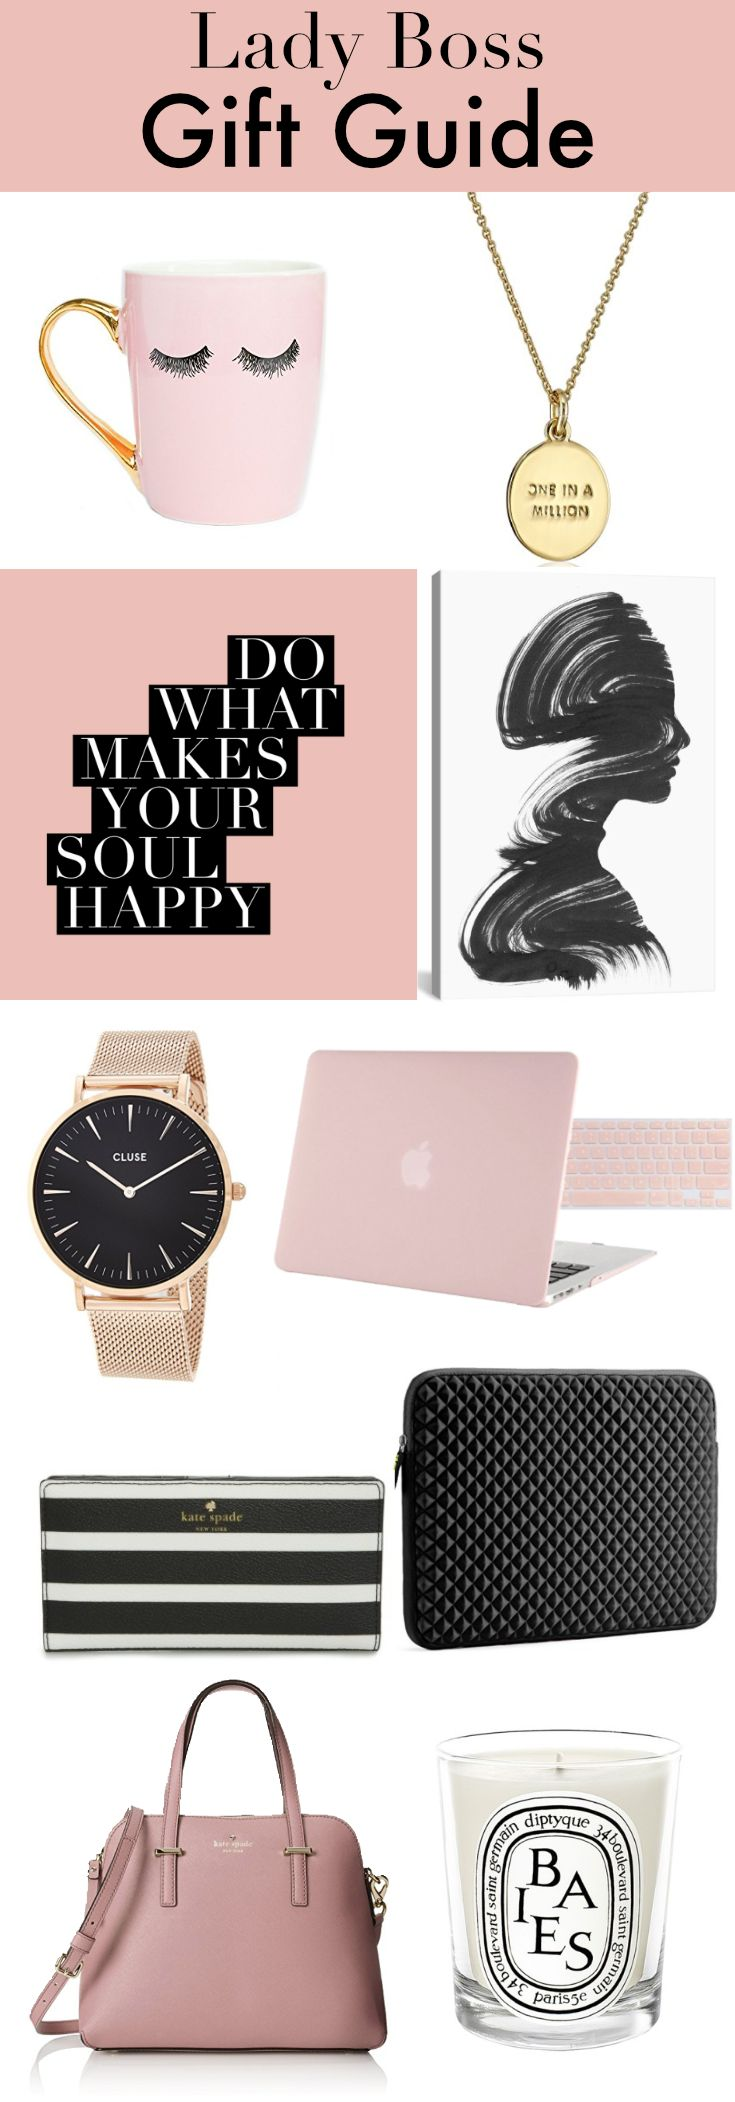 Lady Boss Gift Ideas | Best Gift ideas for her Christmas, Birthday, Valentines day, Graduation, Anniversary. For the wife, #Girlboss #ladyboss #blogger #mompreneur  #fashionblogger #girlfriendgiftideas , you love. ||  https://thecuratecollaborative.com/best-lady-boss-gifts